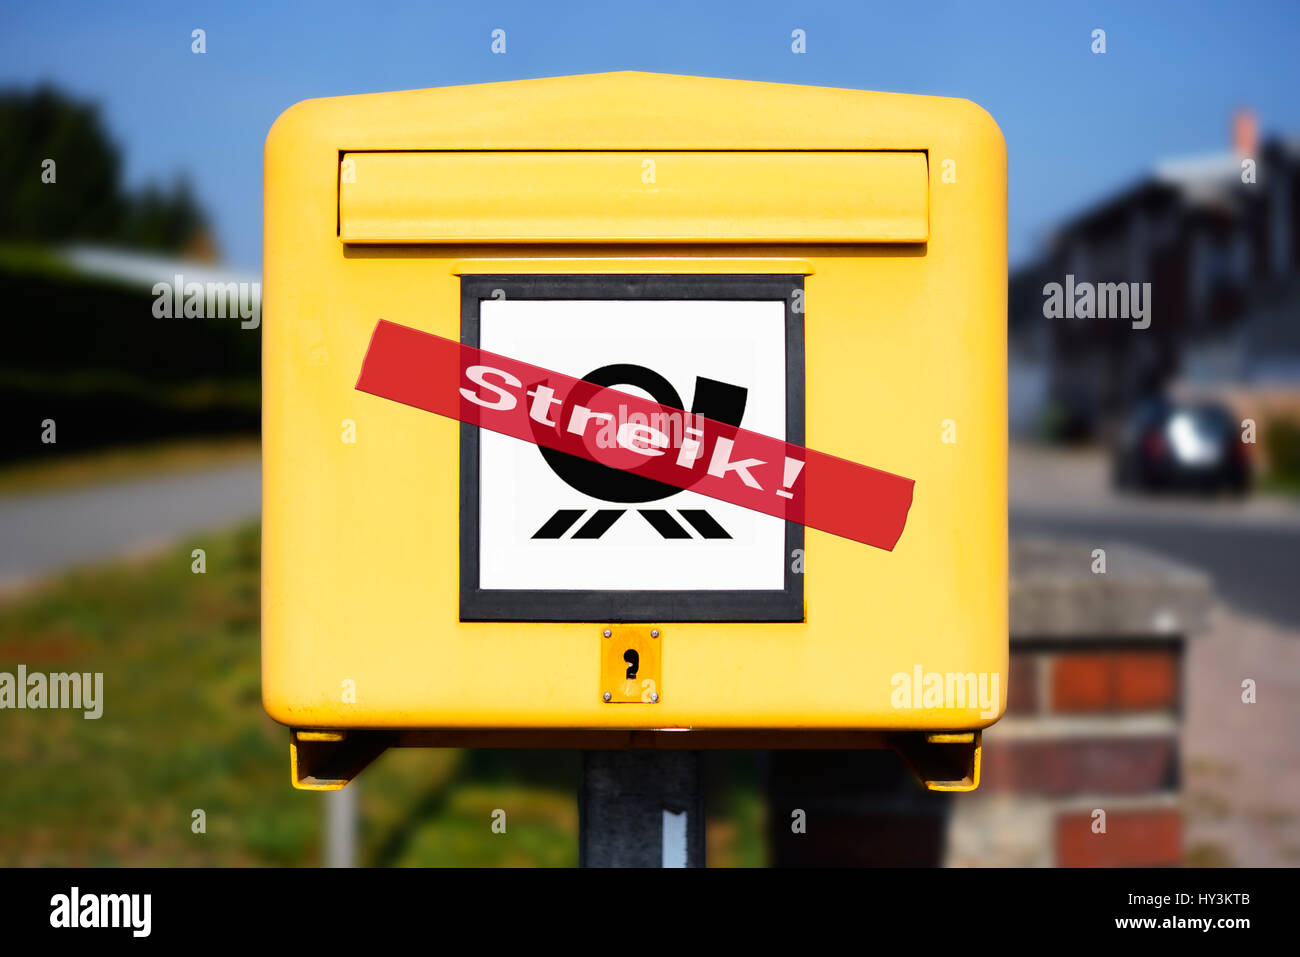 Mailbox with strike stroke, symbolic photo postal strike, Briefkasten mit Streik-Schriftzug, Symbolfoto Post-Streik Stock Photo